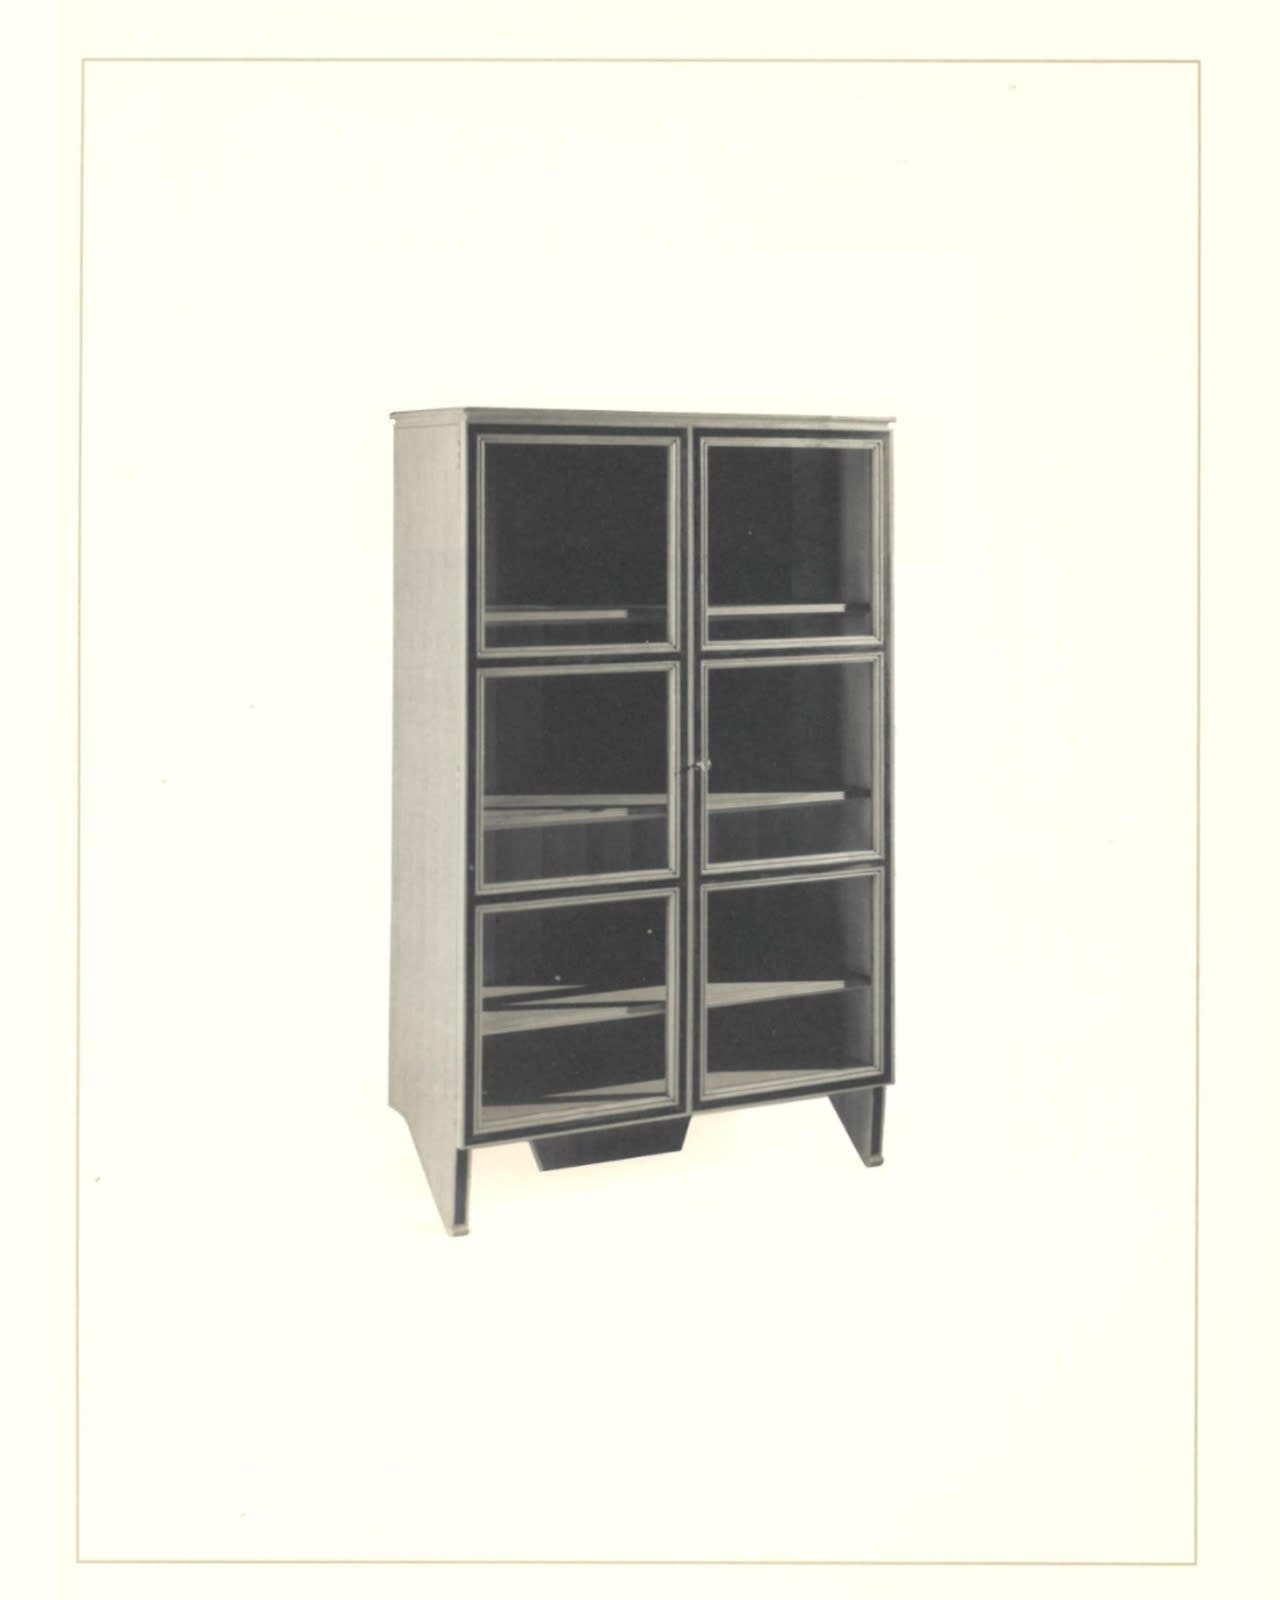 A glass cabinet so you can't hide any unwanted things inside - it is important to be honest and open in life. (Image from